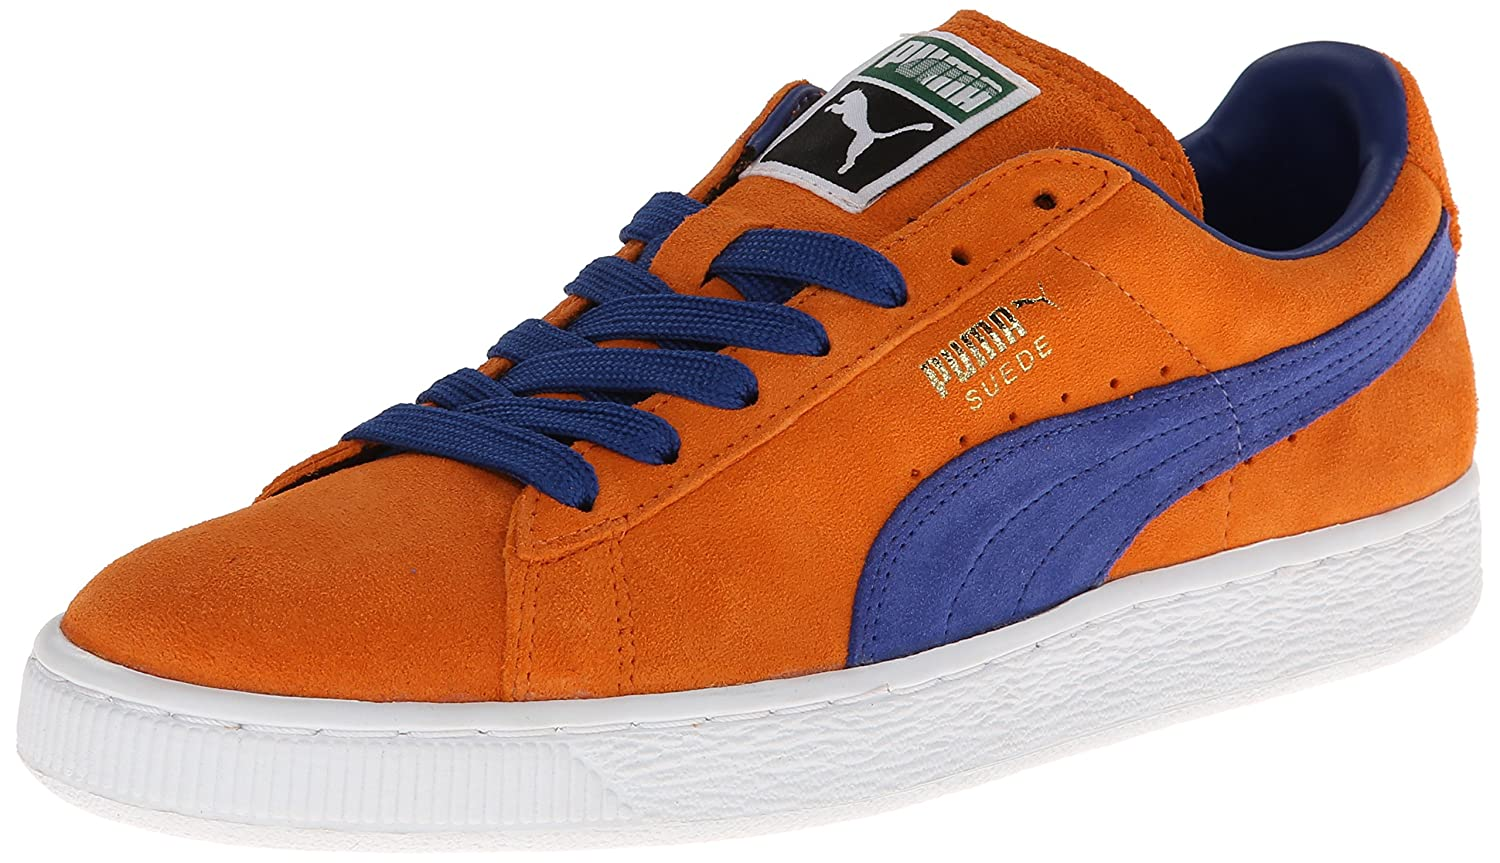 PUMA Adult Suede Classic Shoe B00GV4HPUW 8 M US|Russet Orange/Limoges